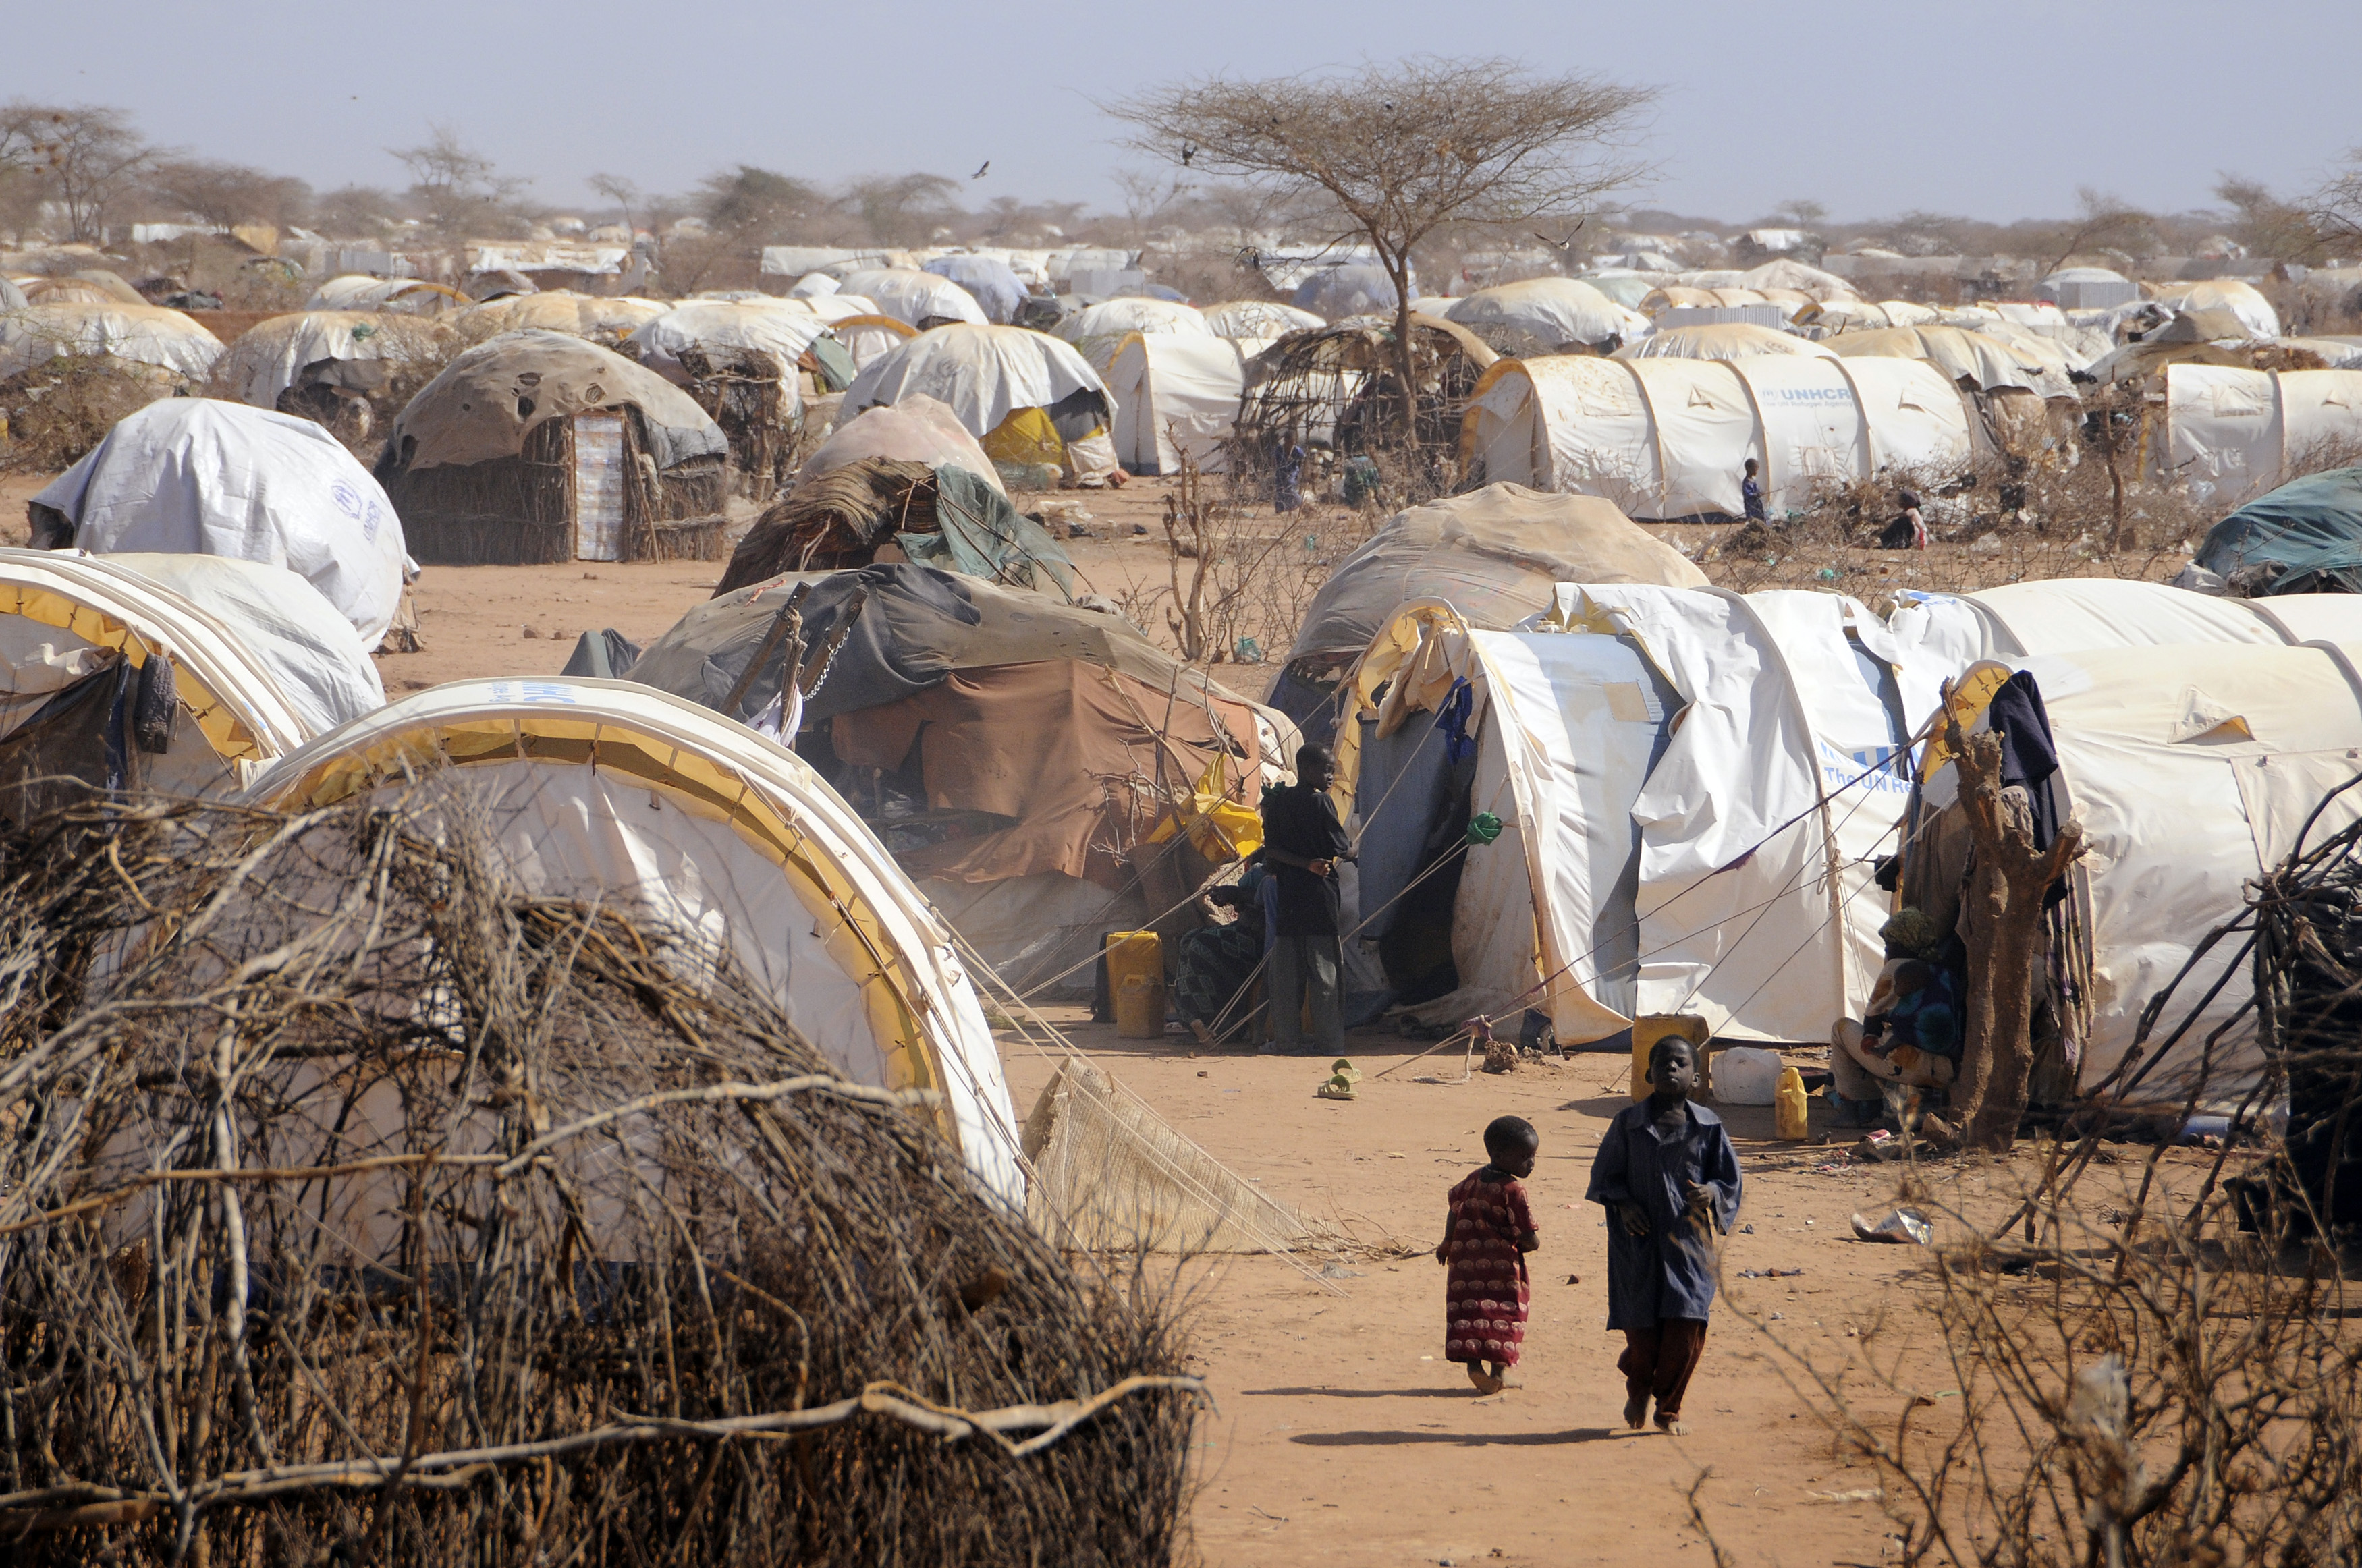 The Dadaab camp is about 20 square miles located in eastern Kenya, about 60 miles from the Somali border. Photo by Jonathan Ernst/Reuters